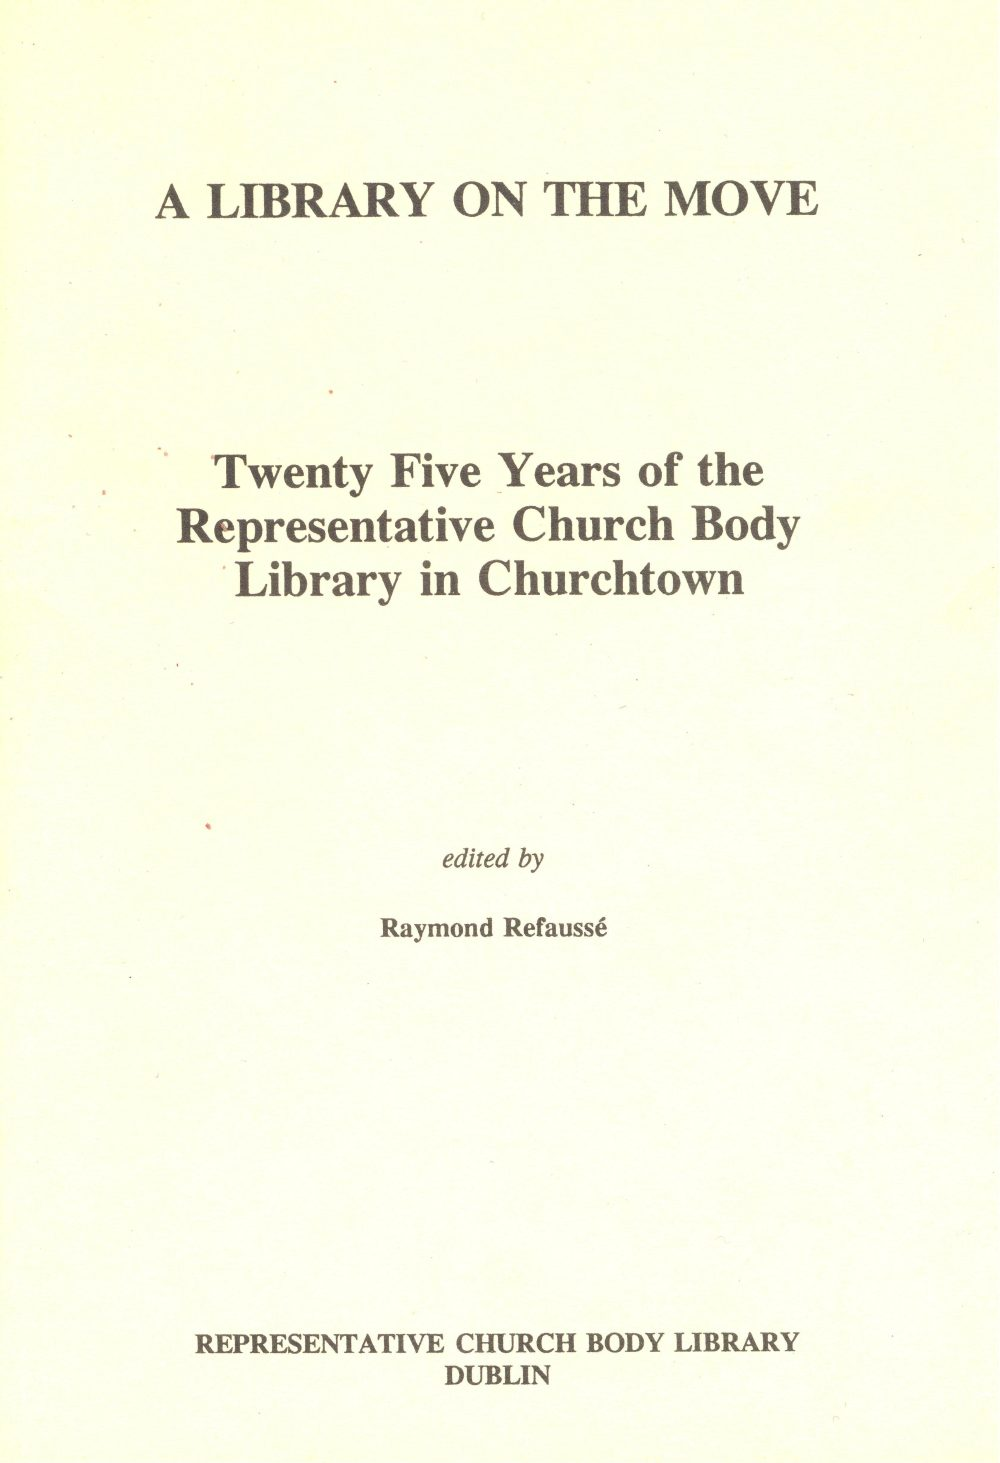 Raymond Refaussé (editor), A Library on the Move: Twenty Five Years of the RCB Library in Churchtown (RCB Library, Dublin, 1970).